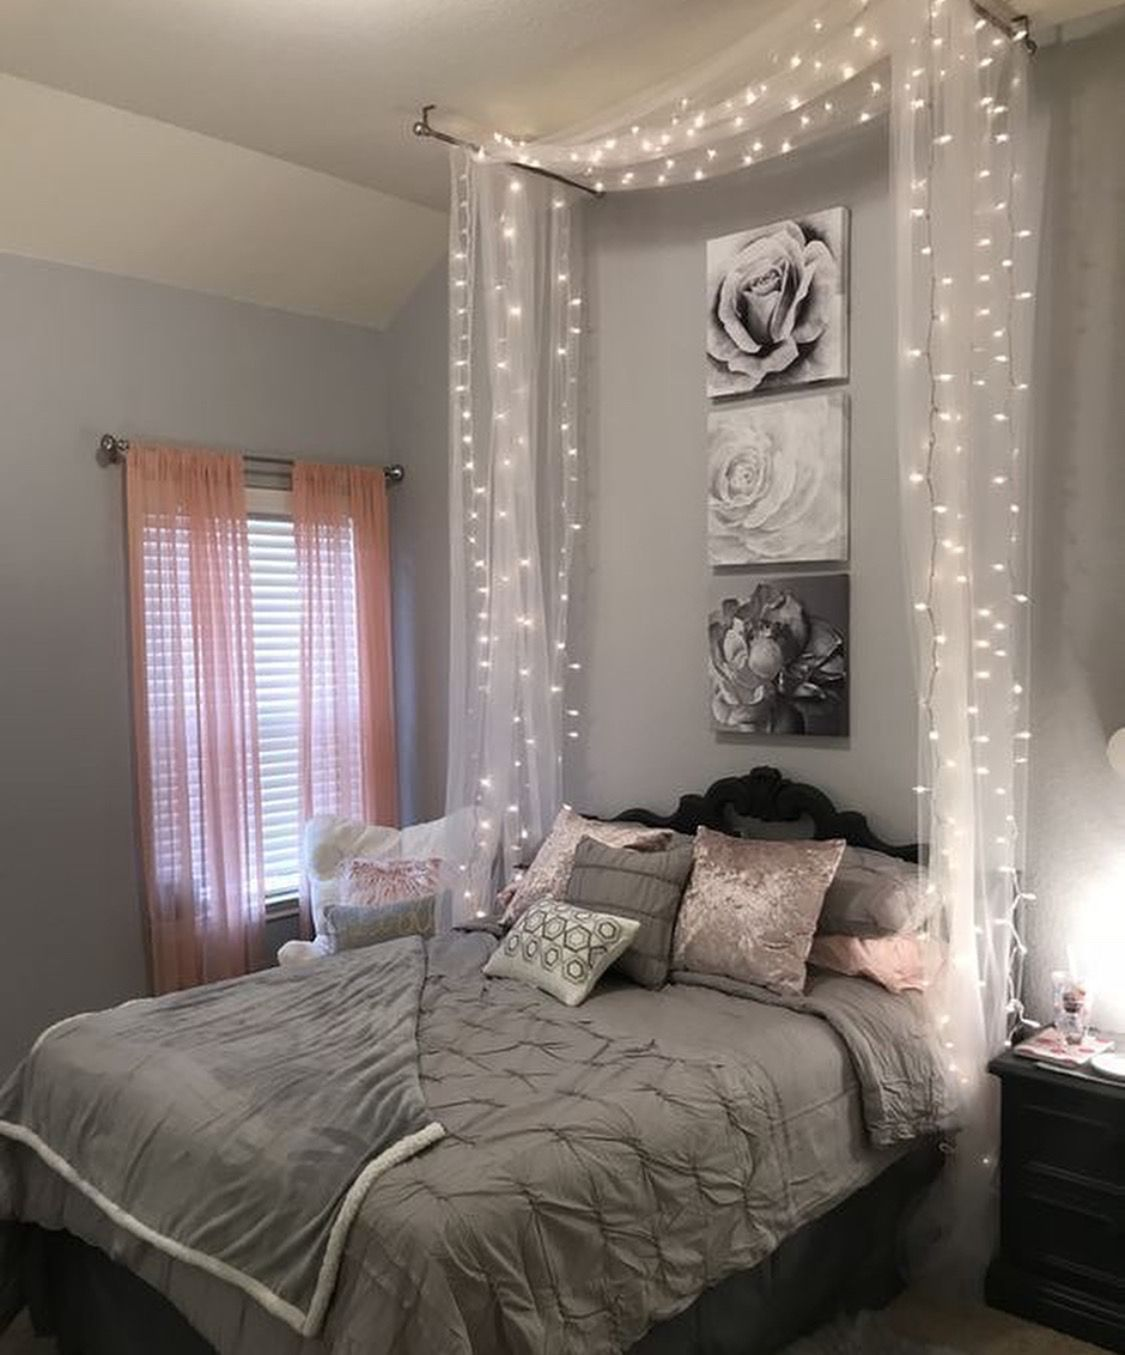 Framed Rose Prints Hanging Tulle With Lights Sheer Curtains At The Windows Relaxing And In 2020 Small Bedroom Ideas On A Budget Small Room Bedroom Bedroom Makeover